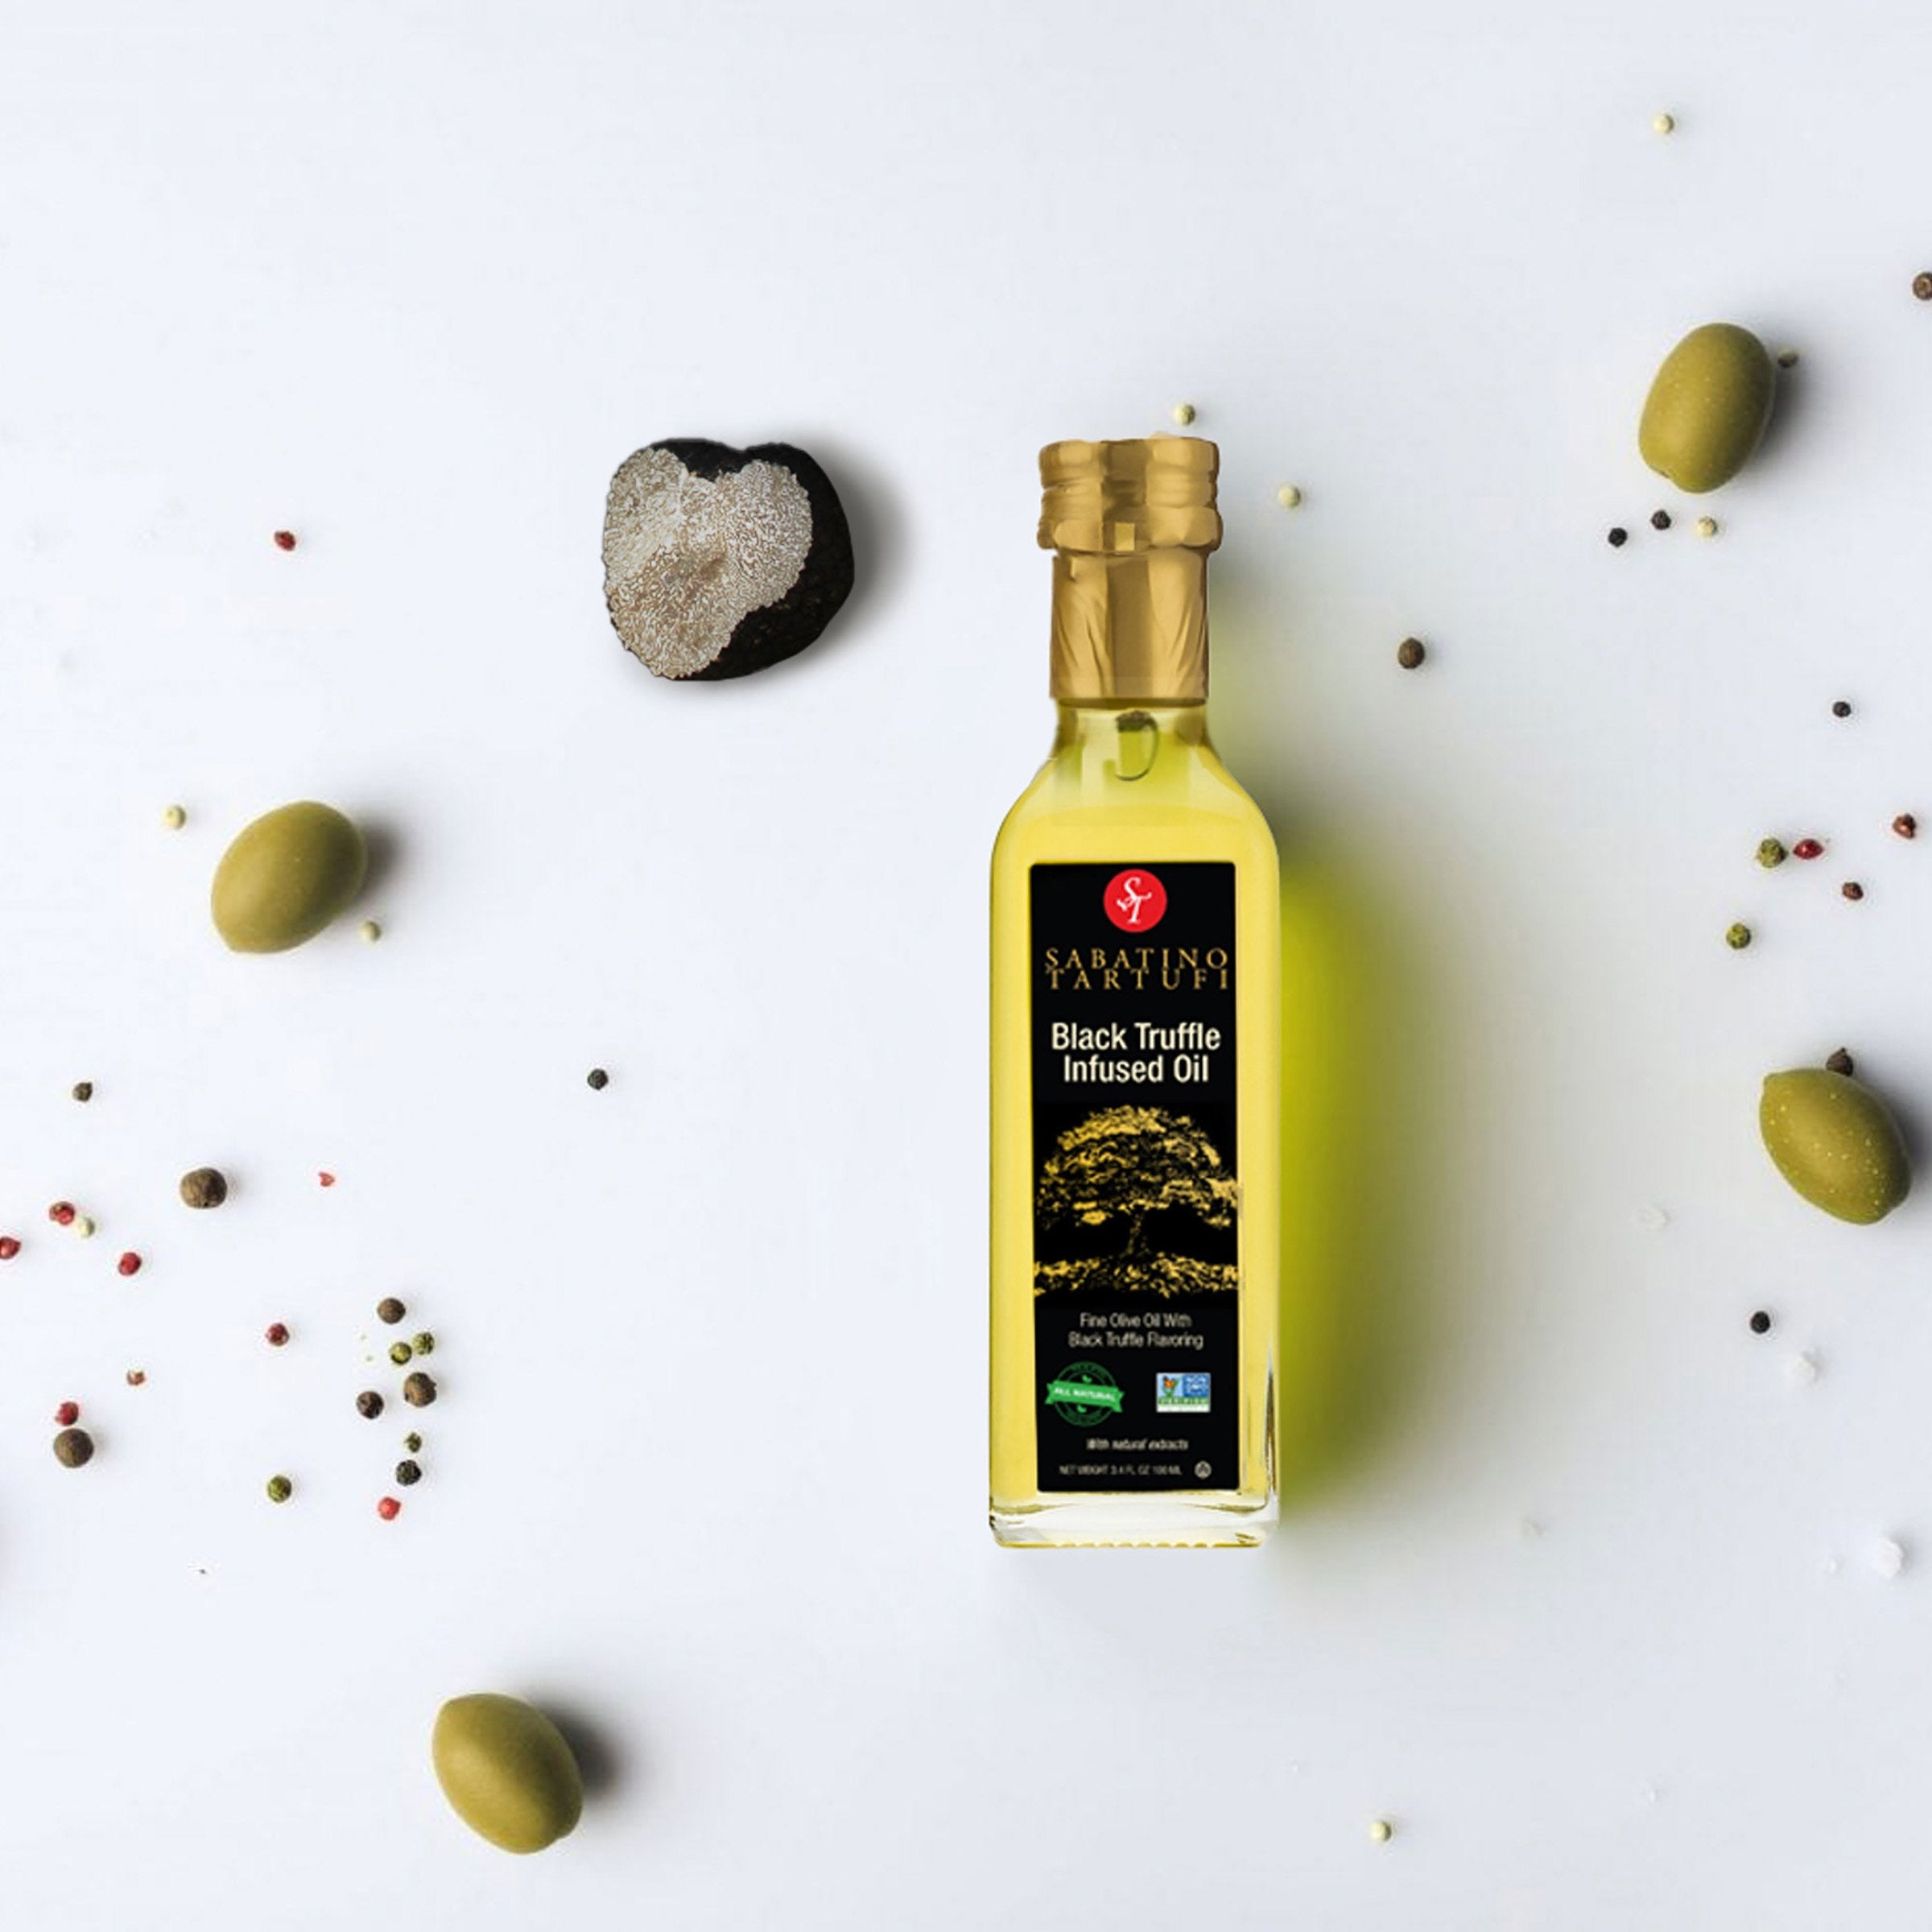 Black Truffle Infused Olive Oil - 3.4 fl oz <br> Case Pack 6 Units